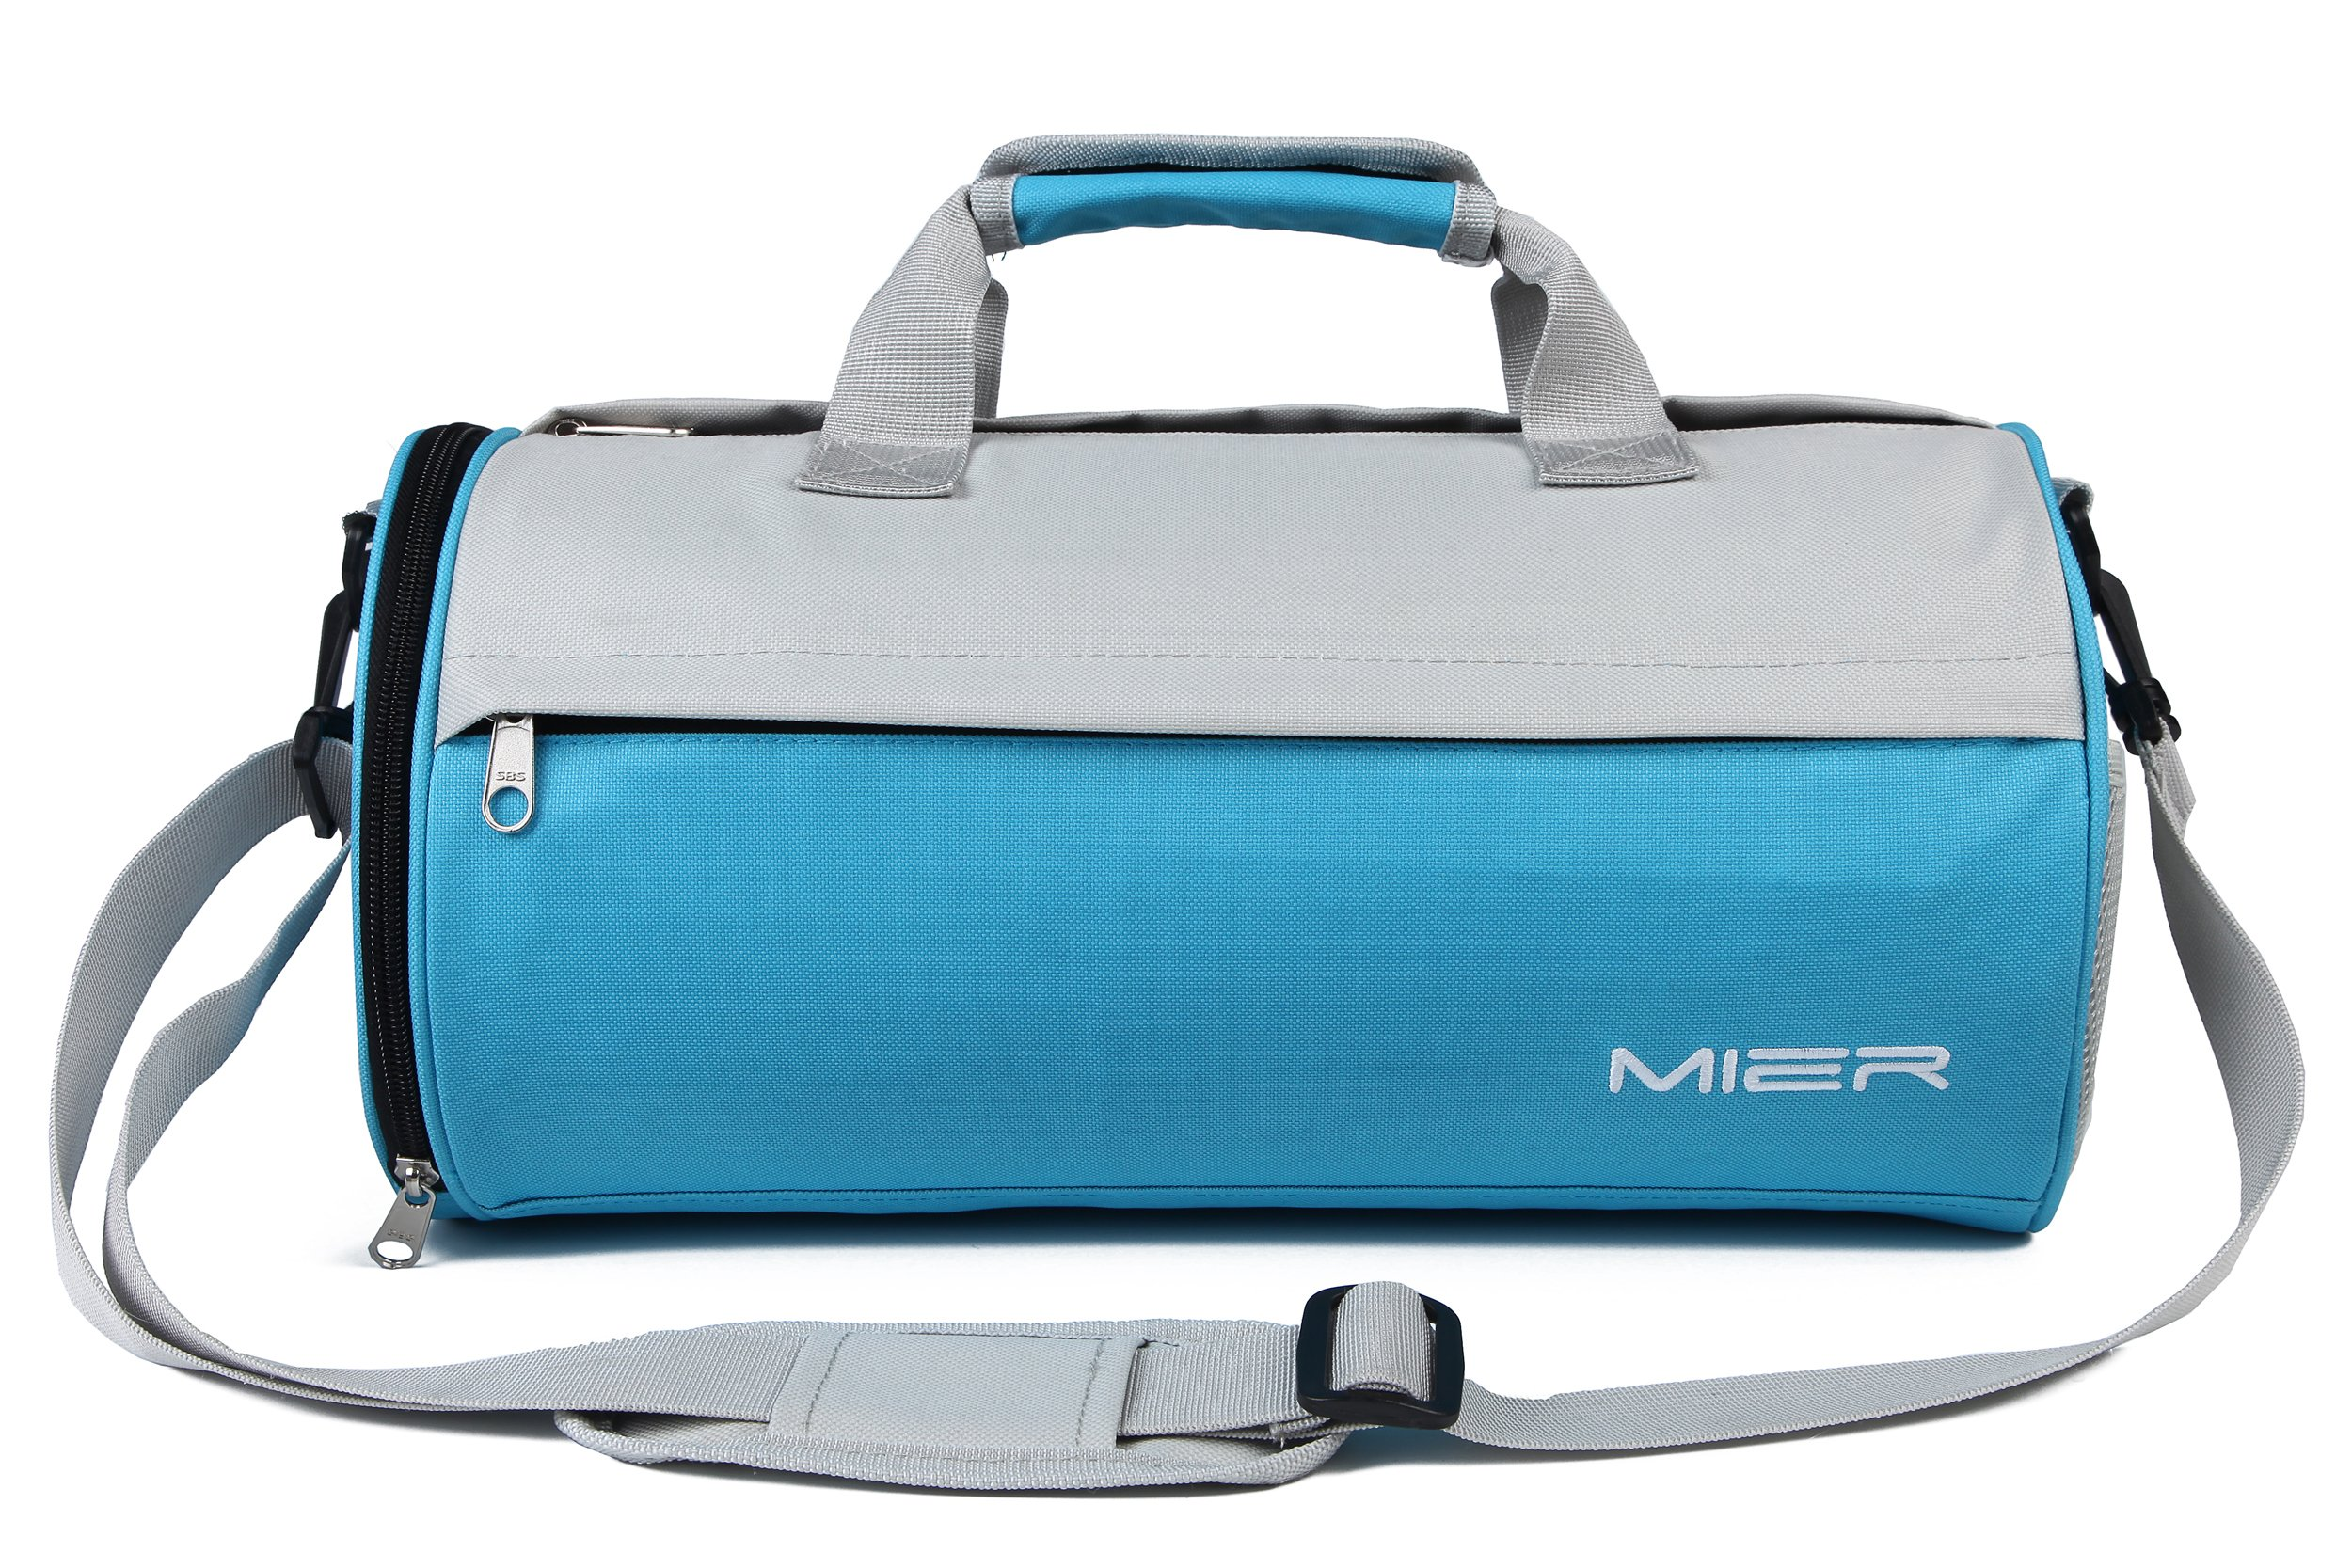 MIER Barrel Travel Sports Bag for Women and Men Small Gym Bag with Shoes Compartment 19.7inches(Blue)